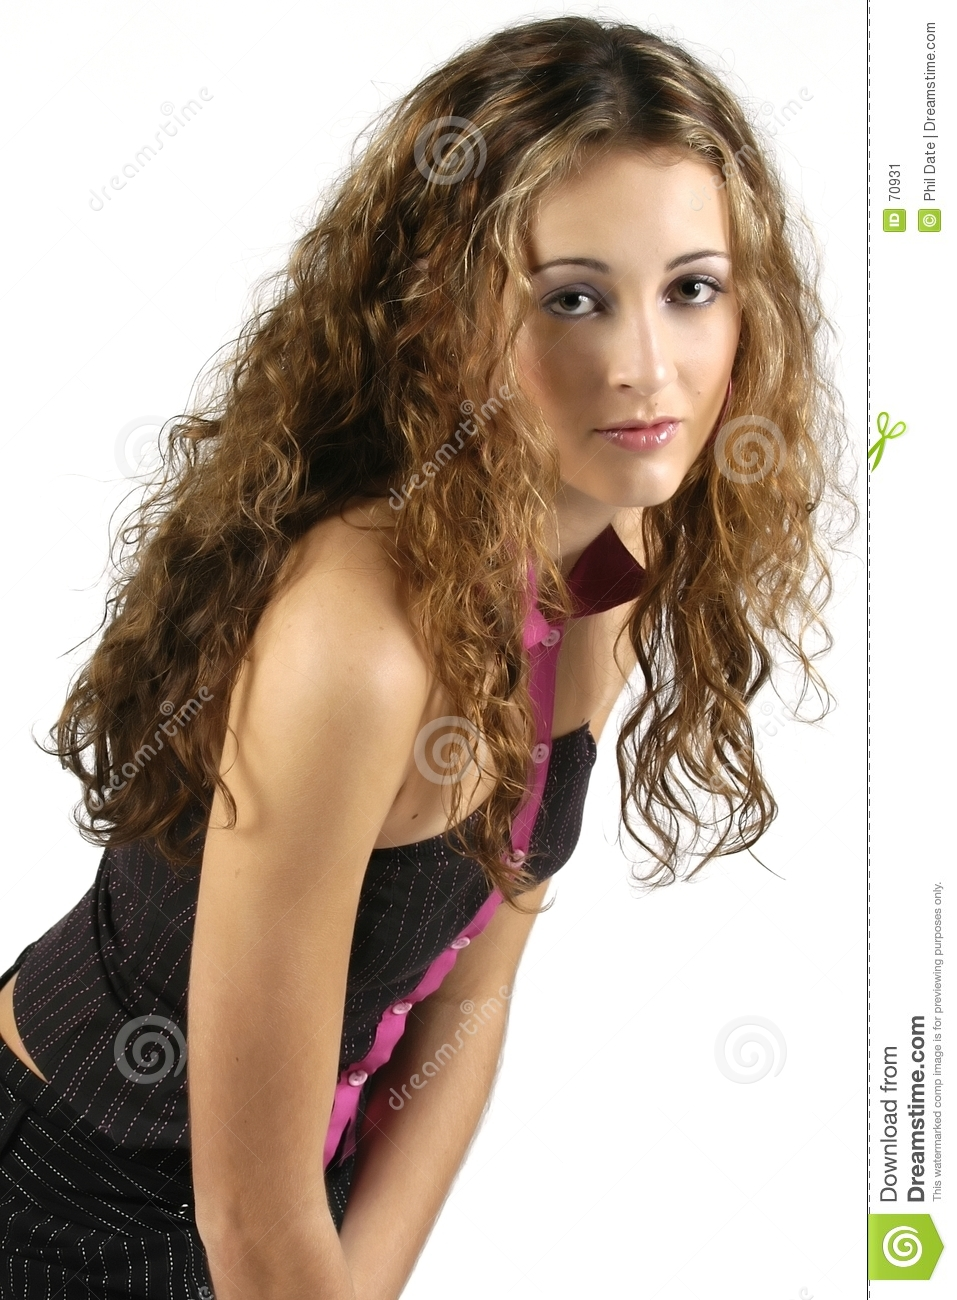 Teen Model 3 Stock Image. Image Of Pretty, Frizzy